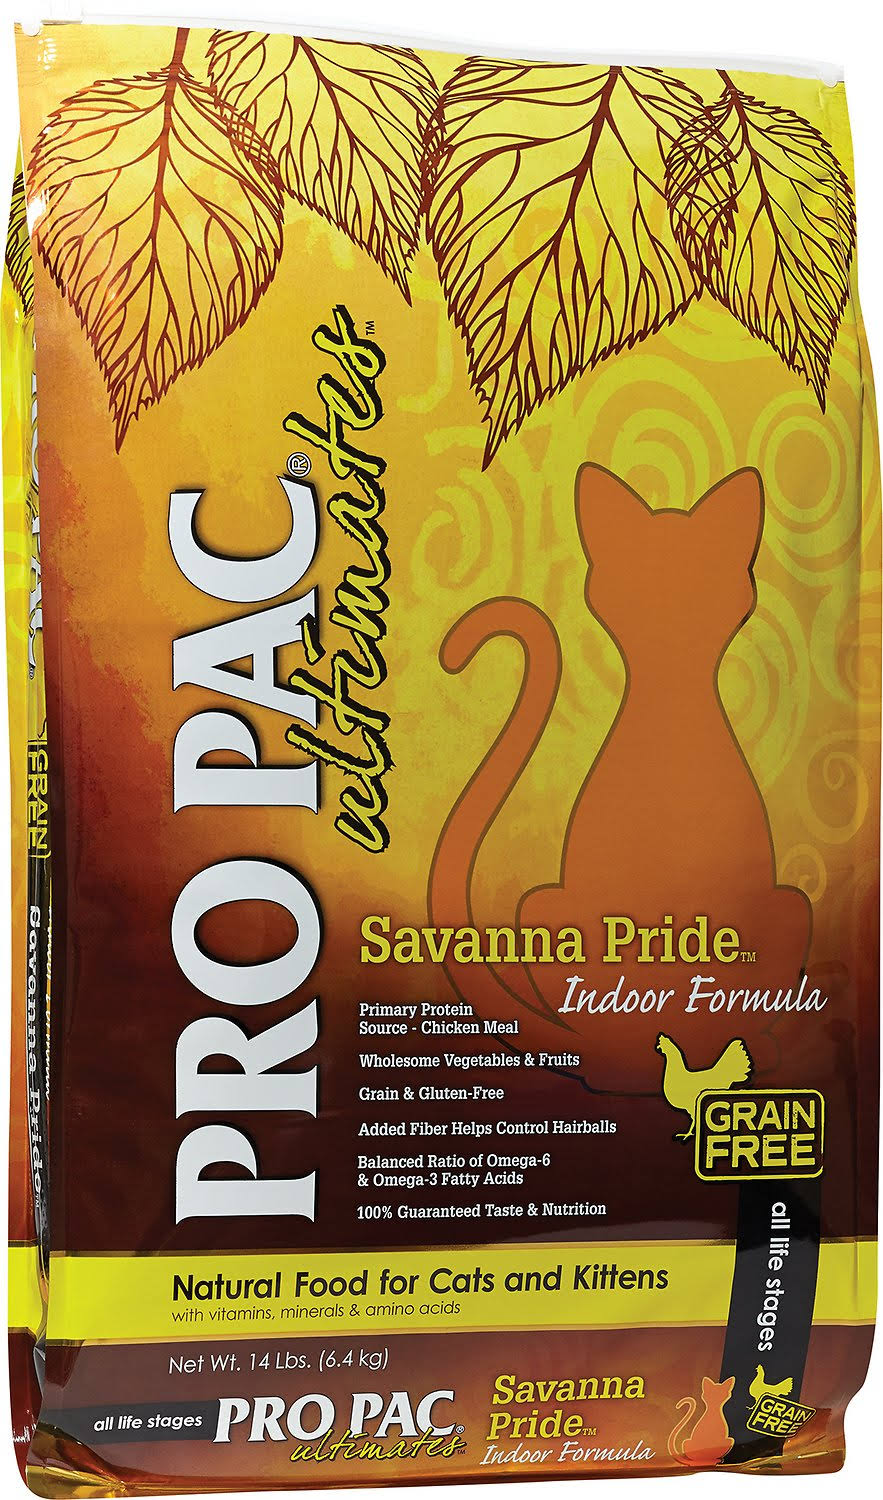 Pro Pac Ultimates Savanna Pride Indoor Cat Food - 14lbs